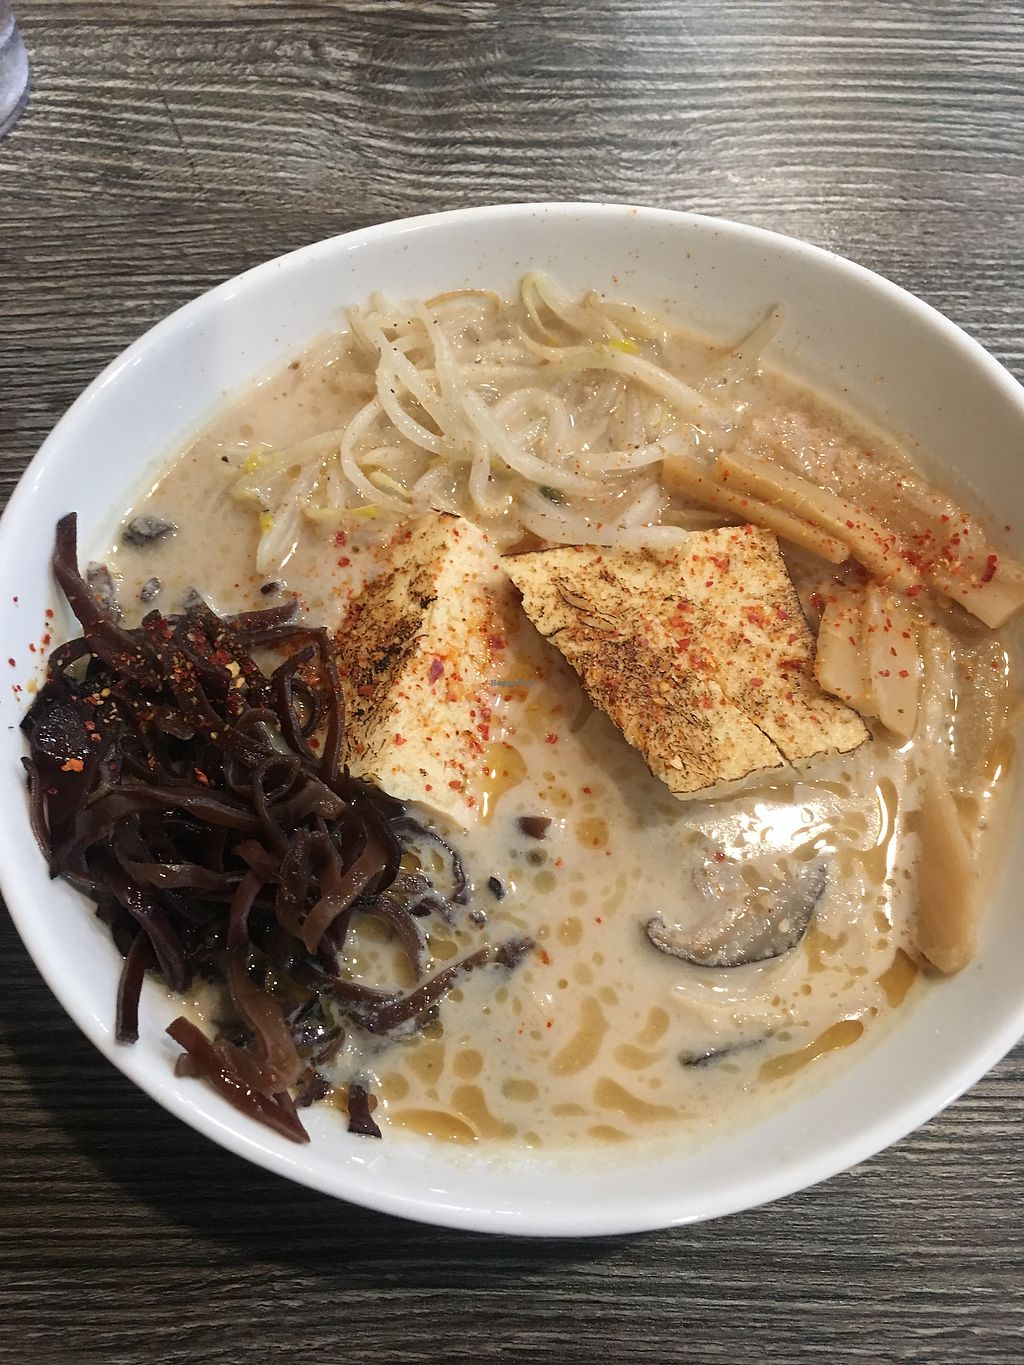 "Photo of Ramen Instant  by <a href=""/members/profile/jamiemichelle_xvx"">jamiemichelle_xvx</a> <br/>Vegan soup with tofu steak, bean sprouts, black mushrooms, and bamboo shoots <br/> April 8, 2018  - <a href='/contact/abuse/image/103380/382181'>Report</a>"